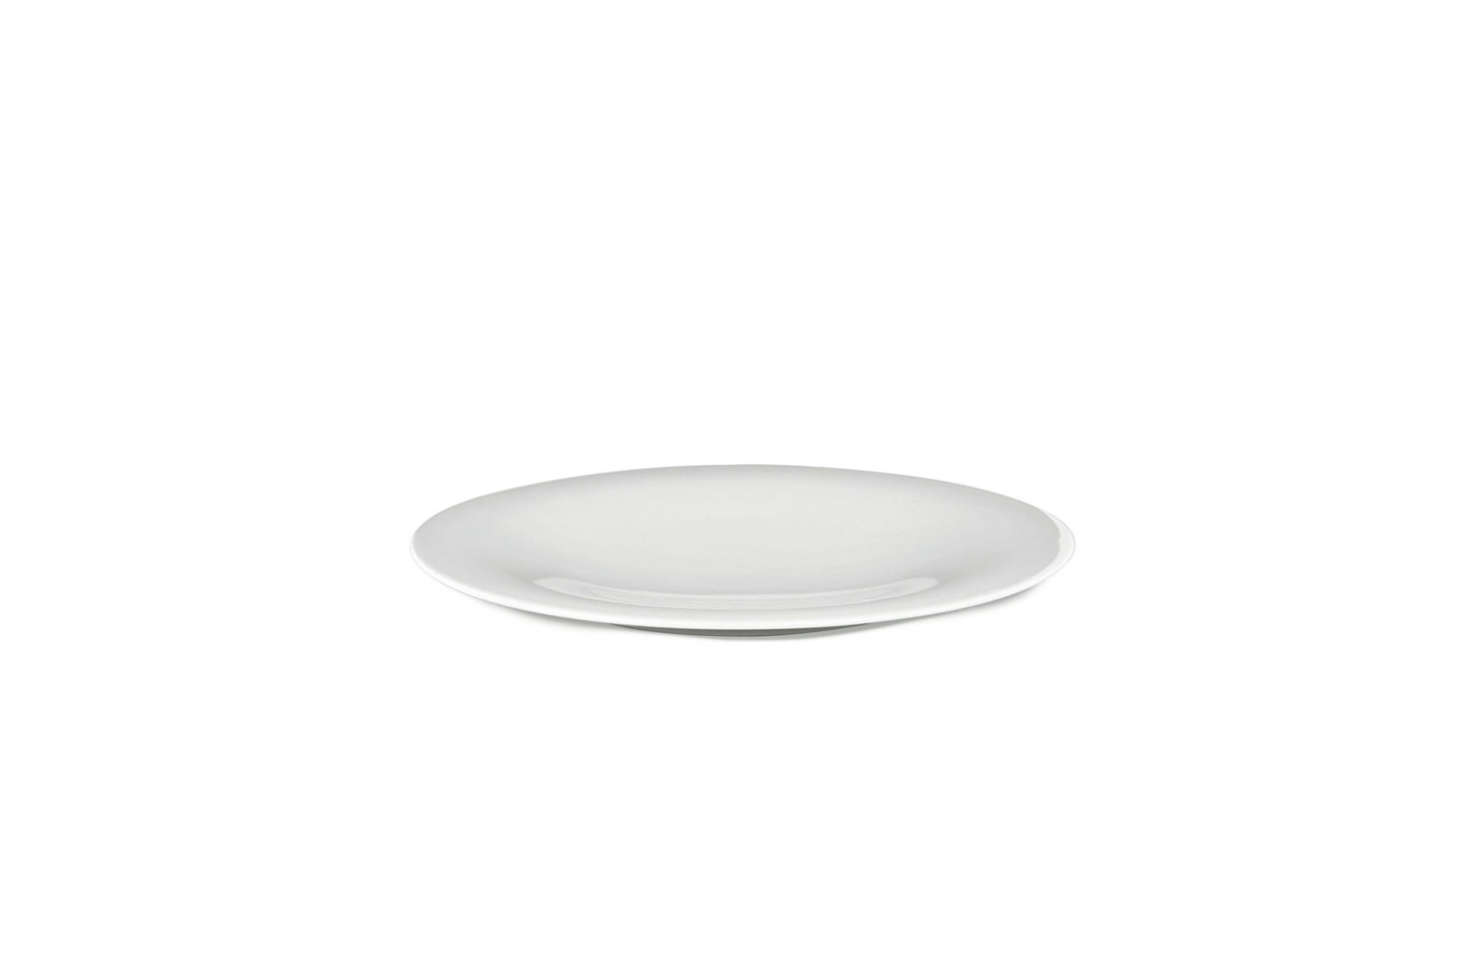 Japanese architect and winner of the 2013 Pritzker Prize Toyo Ito designed the Ku Dinnerware collection for Alessi. The bright white porcelain dinnerware has a smooth polished surface and gentle curved shape. Each piece is sold individually ranging from $11 to $150 at Alessi.